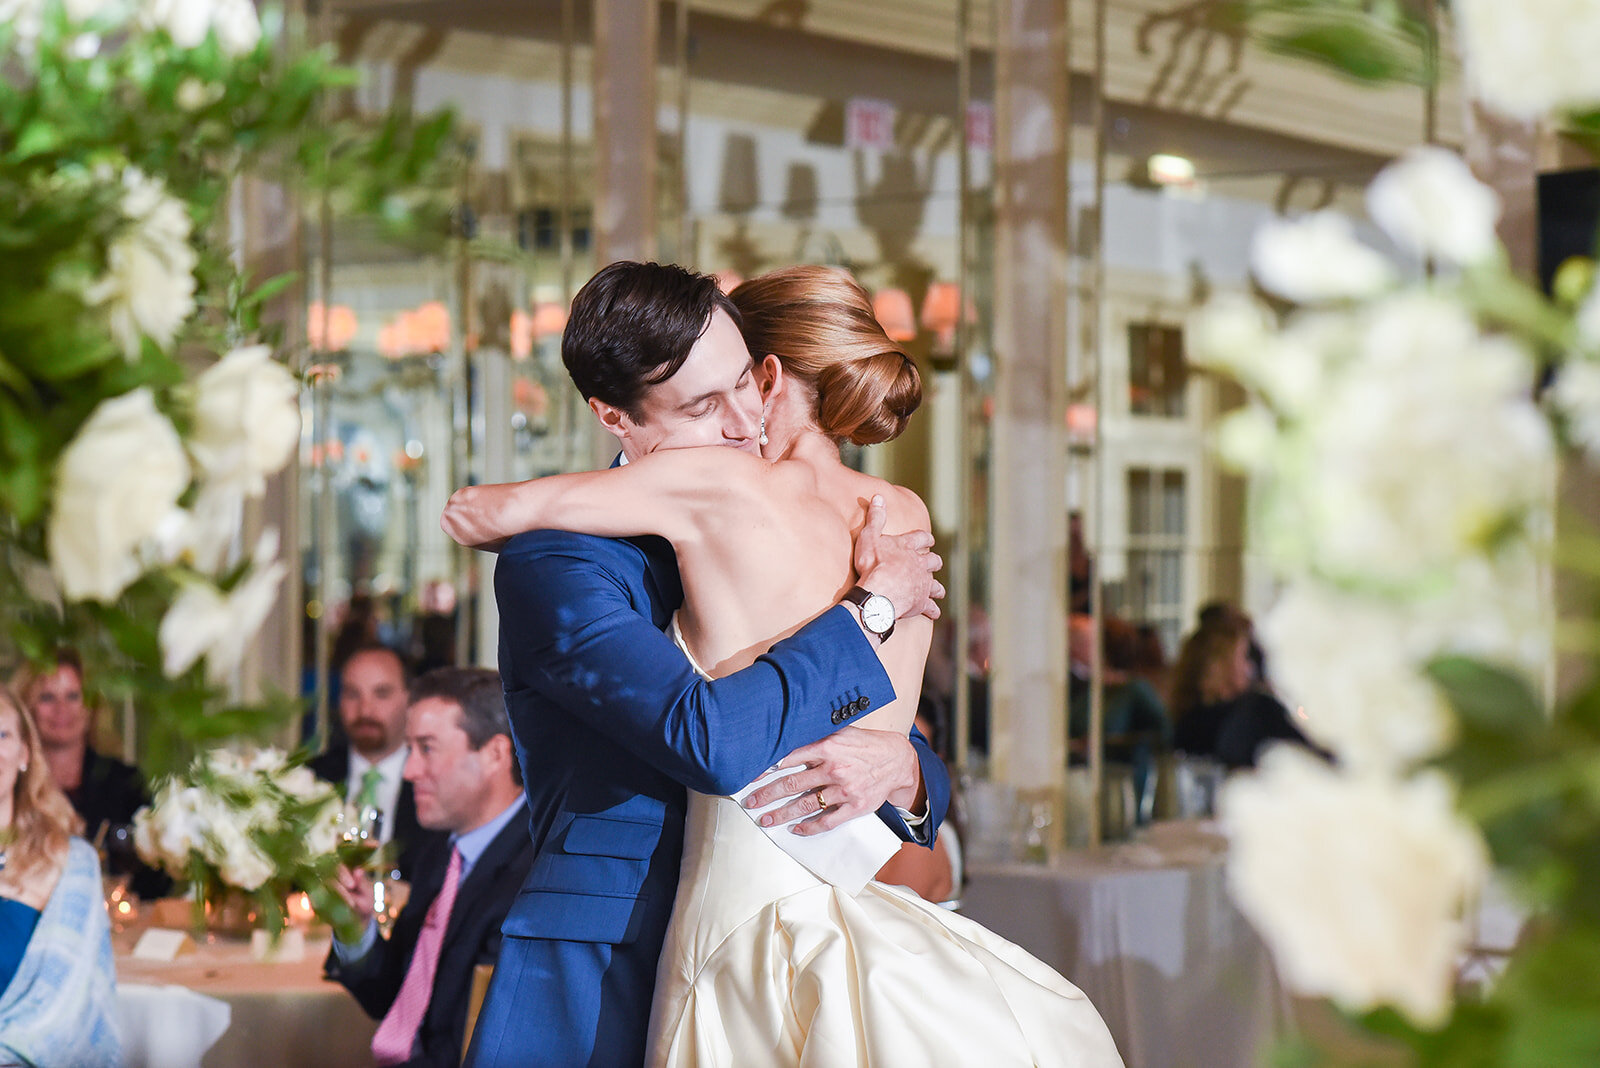 The groom's speech was perfect, as evidenced by the sweet hug the couple shared afterwards.